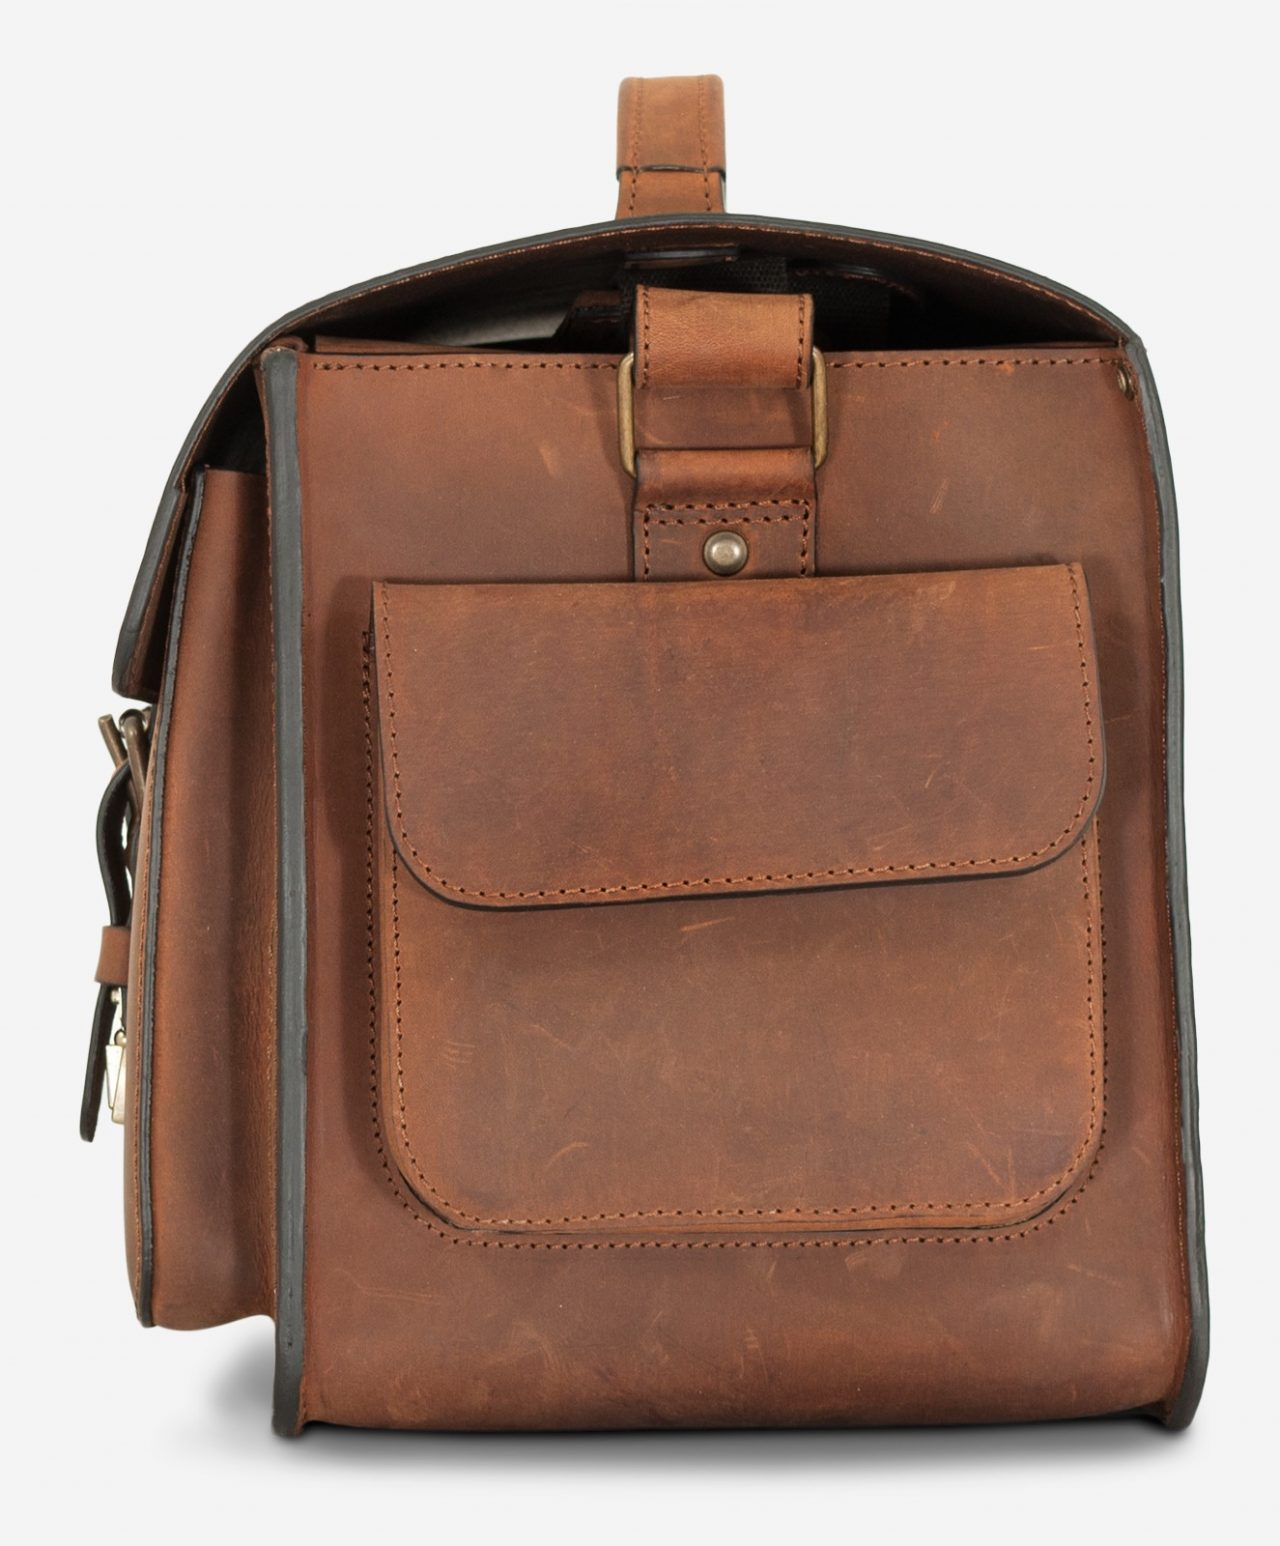 Side view of the large brown leather camera bag.